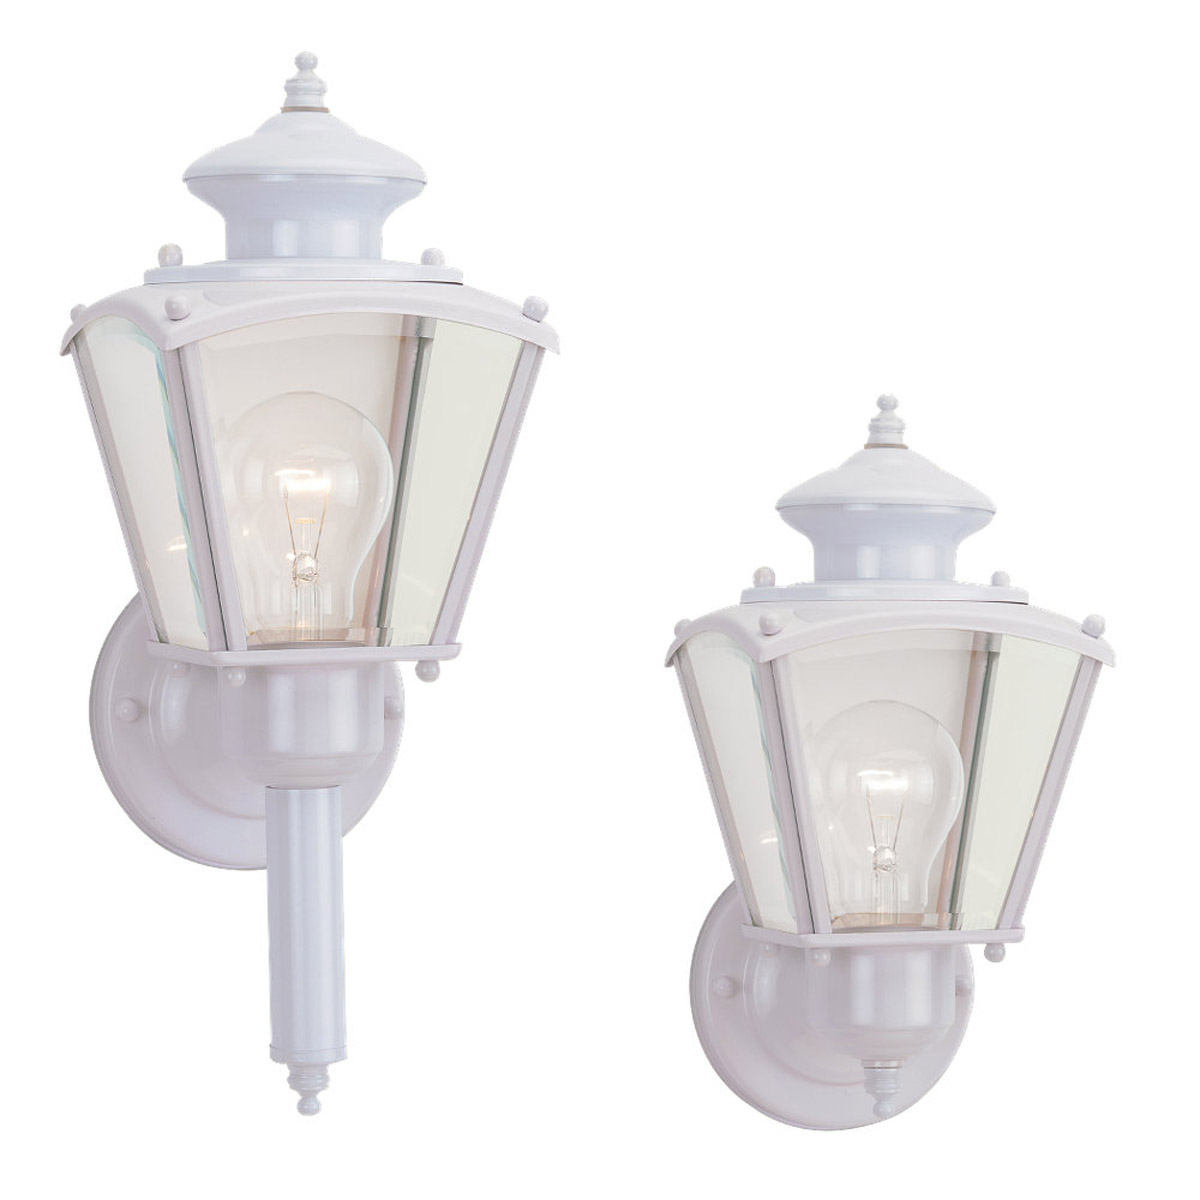 Sea Gull Lighting New Castle 1 Light Outdoor Wall Lantern in White 8503-15